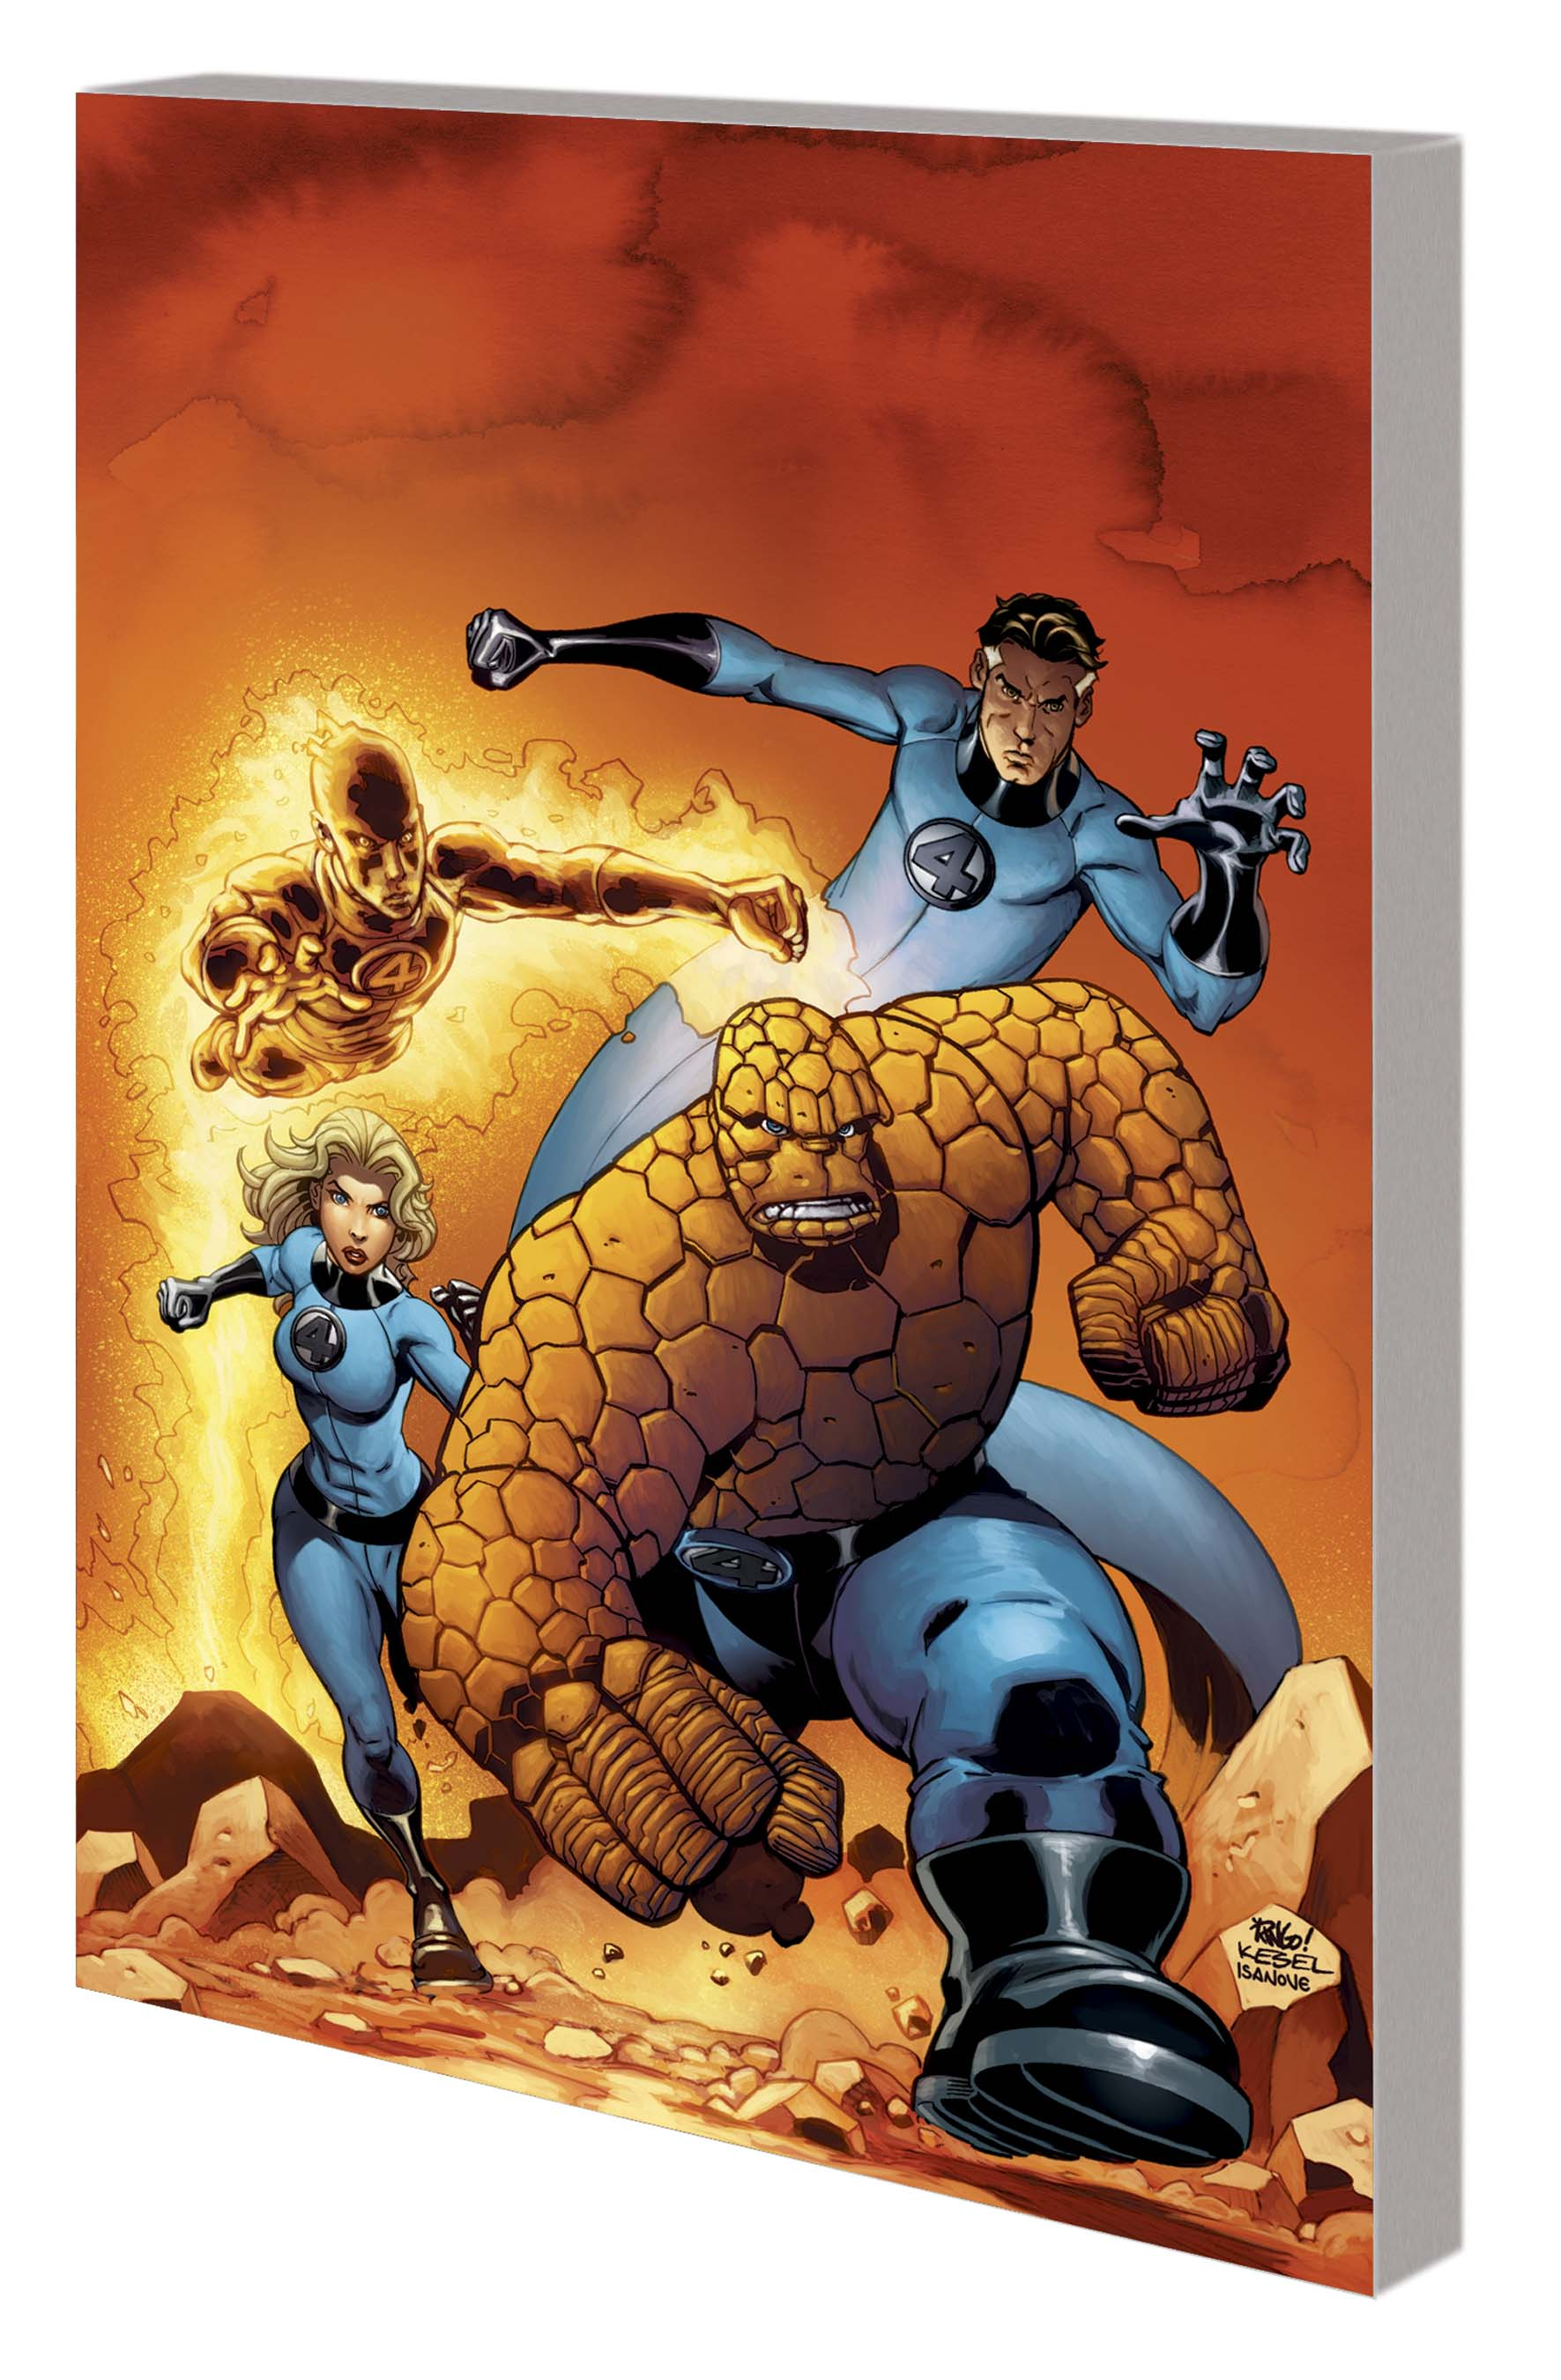 Fantastic Four by Waid & Wieringo Ultimate Collection Book 3 (Trade Paperback)